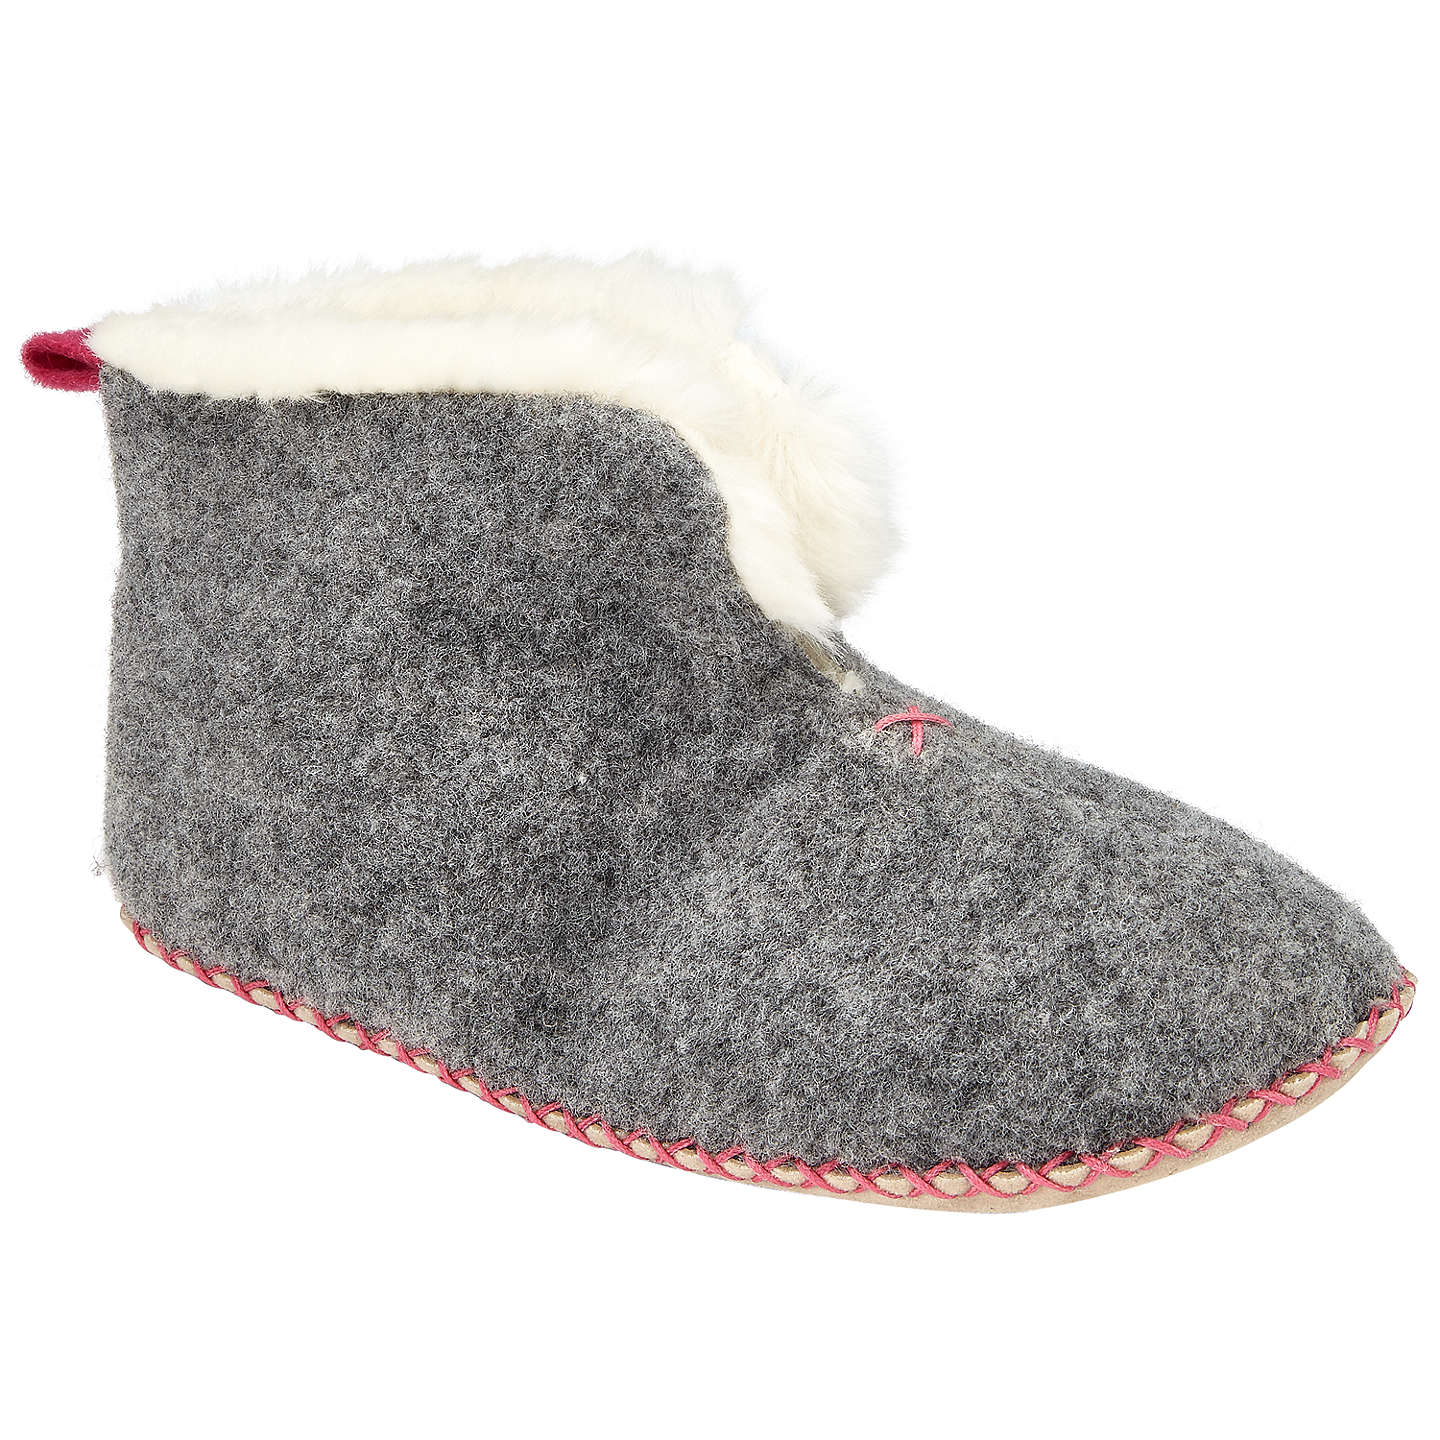 BuyJohn Lewis Children's Felt Bootie Slippers, Grey, 4 Jnr Online at johnlewis.com